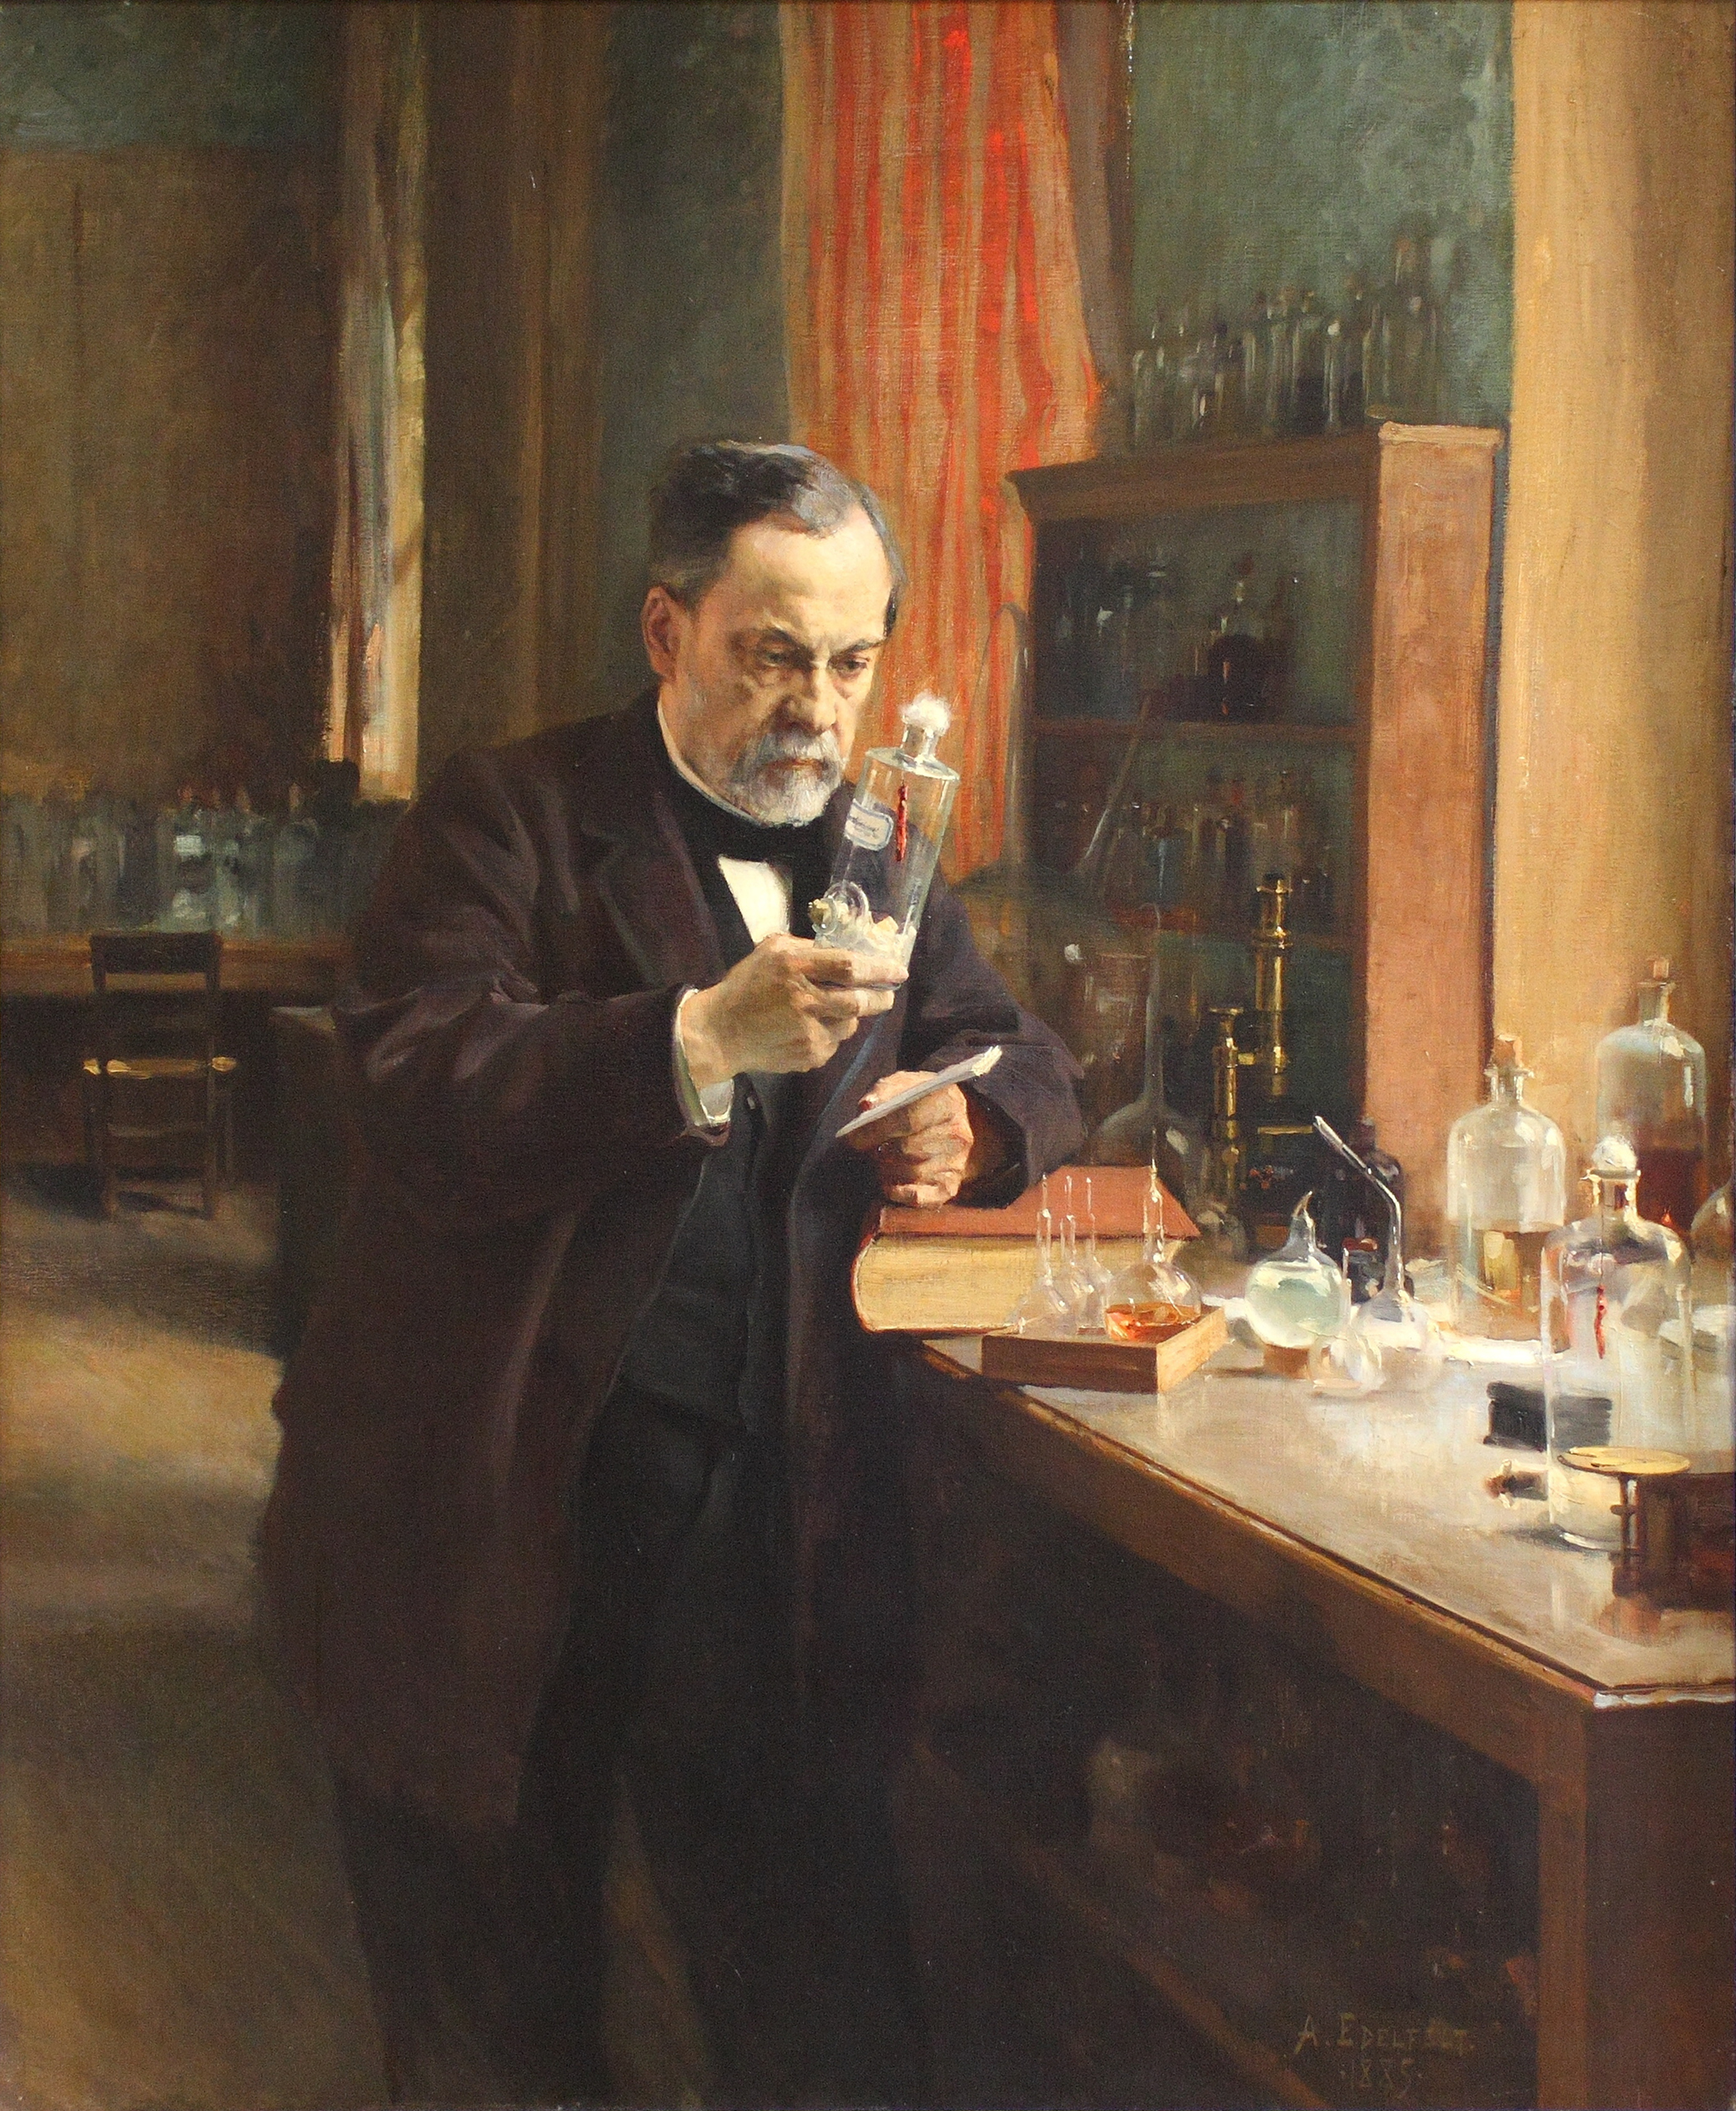 Louis Pasteur, the milky microbiologist   Albert Edelfelt/Wikimedia Commons  (public domain)